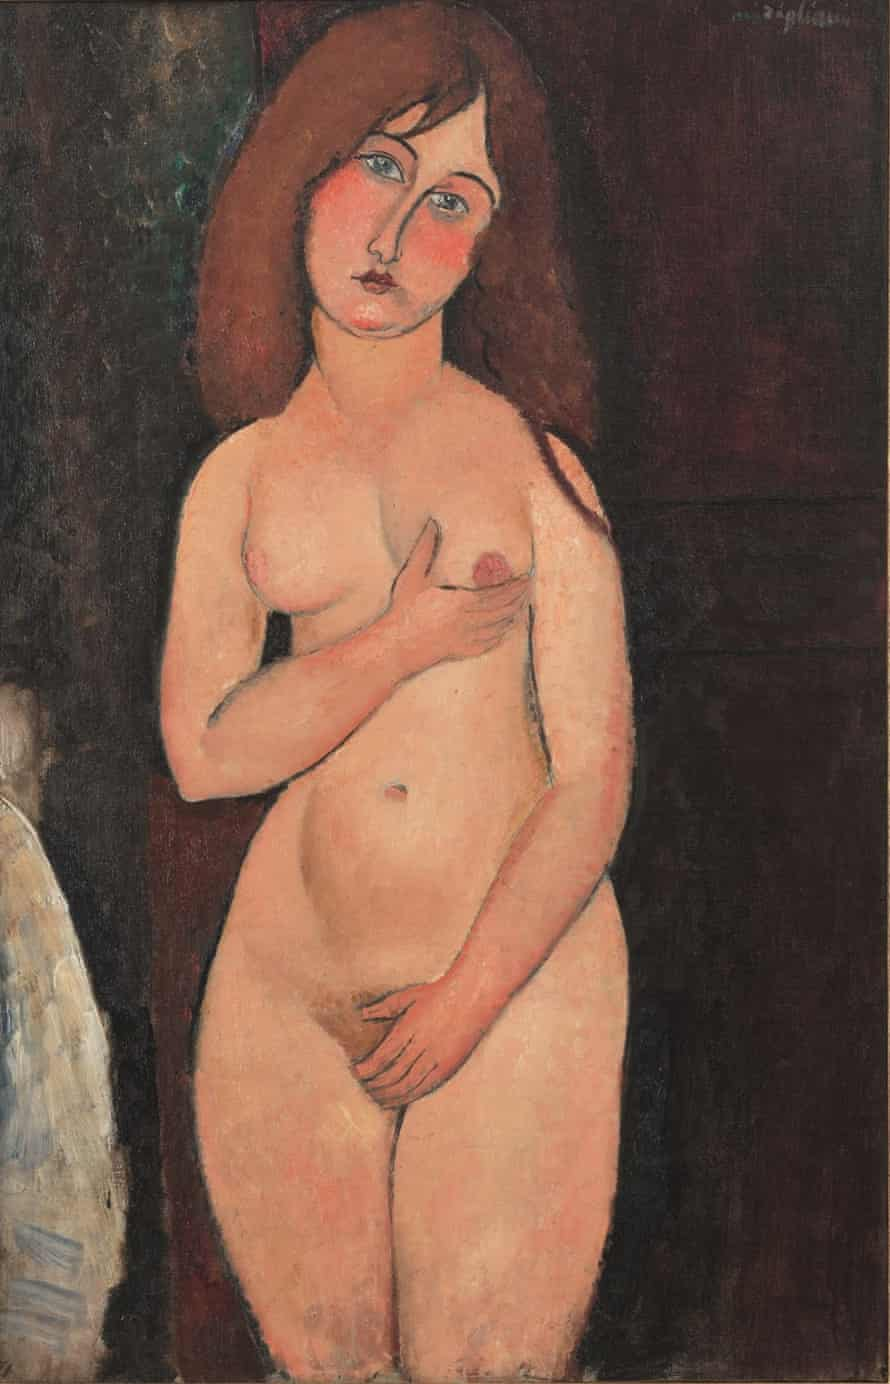 Modigliani Nude (1917) … the police removed the nudes from the gallery when they were first exhibited after they became a focus for shocked outrage.